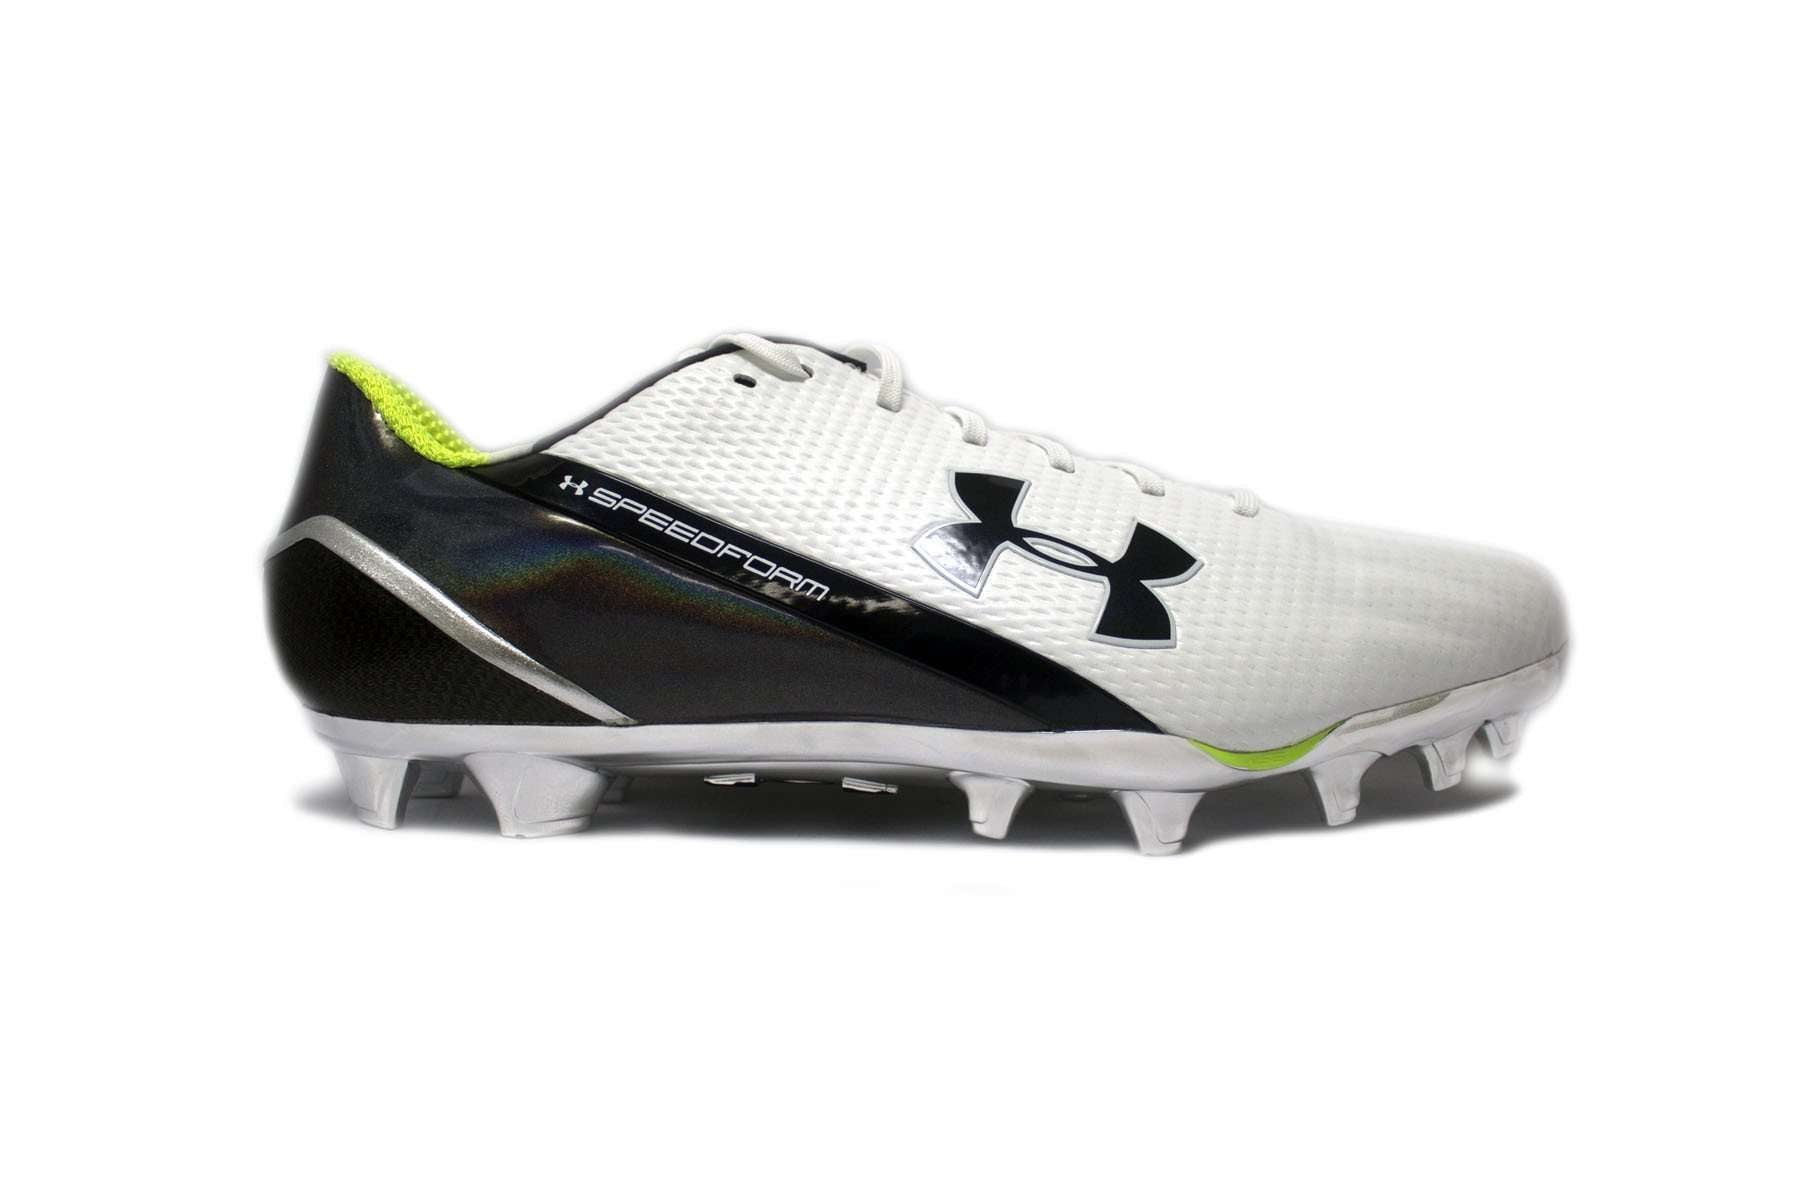 under armour speed form cleats - Heart.impulsar.co